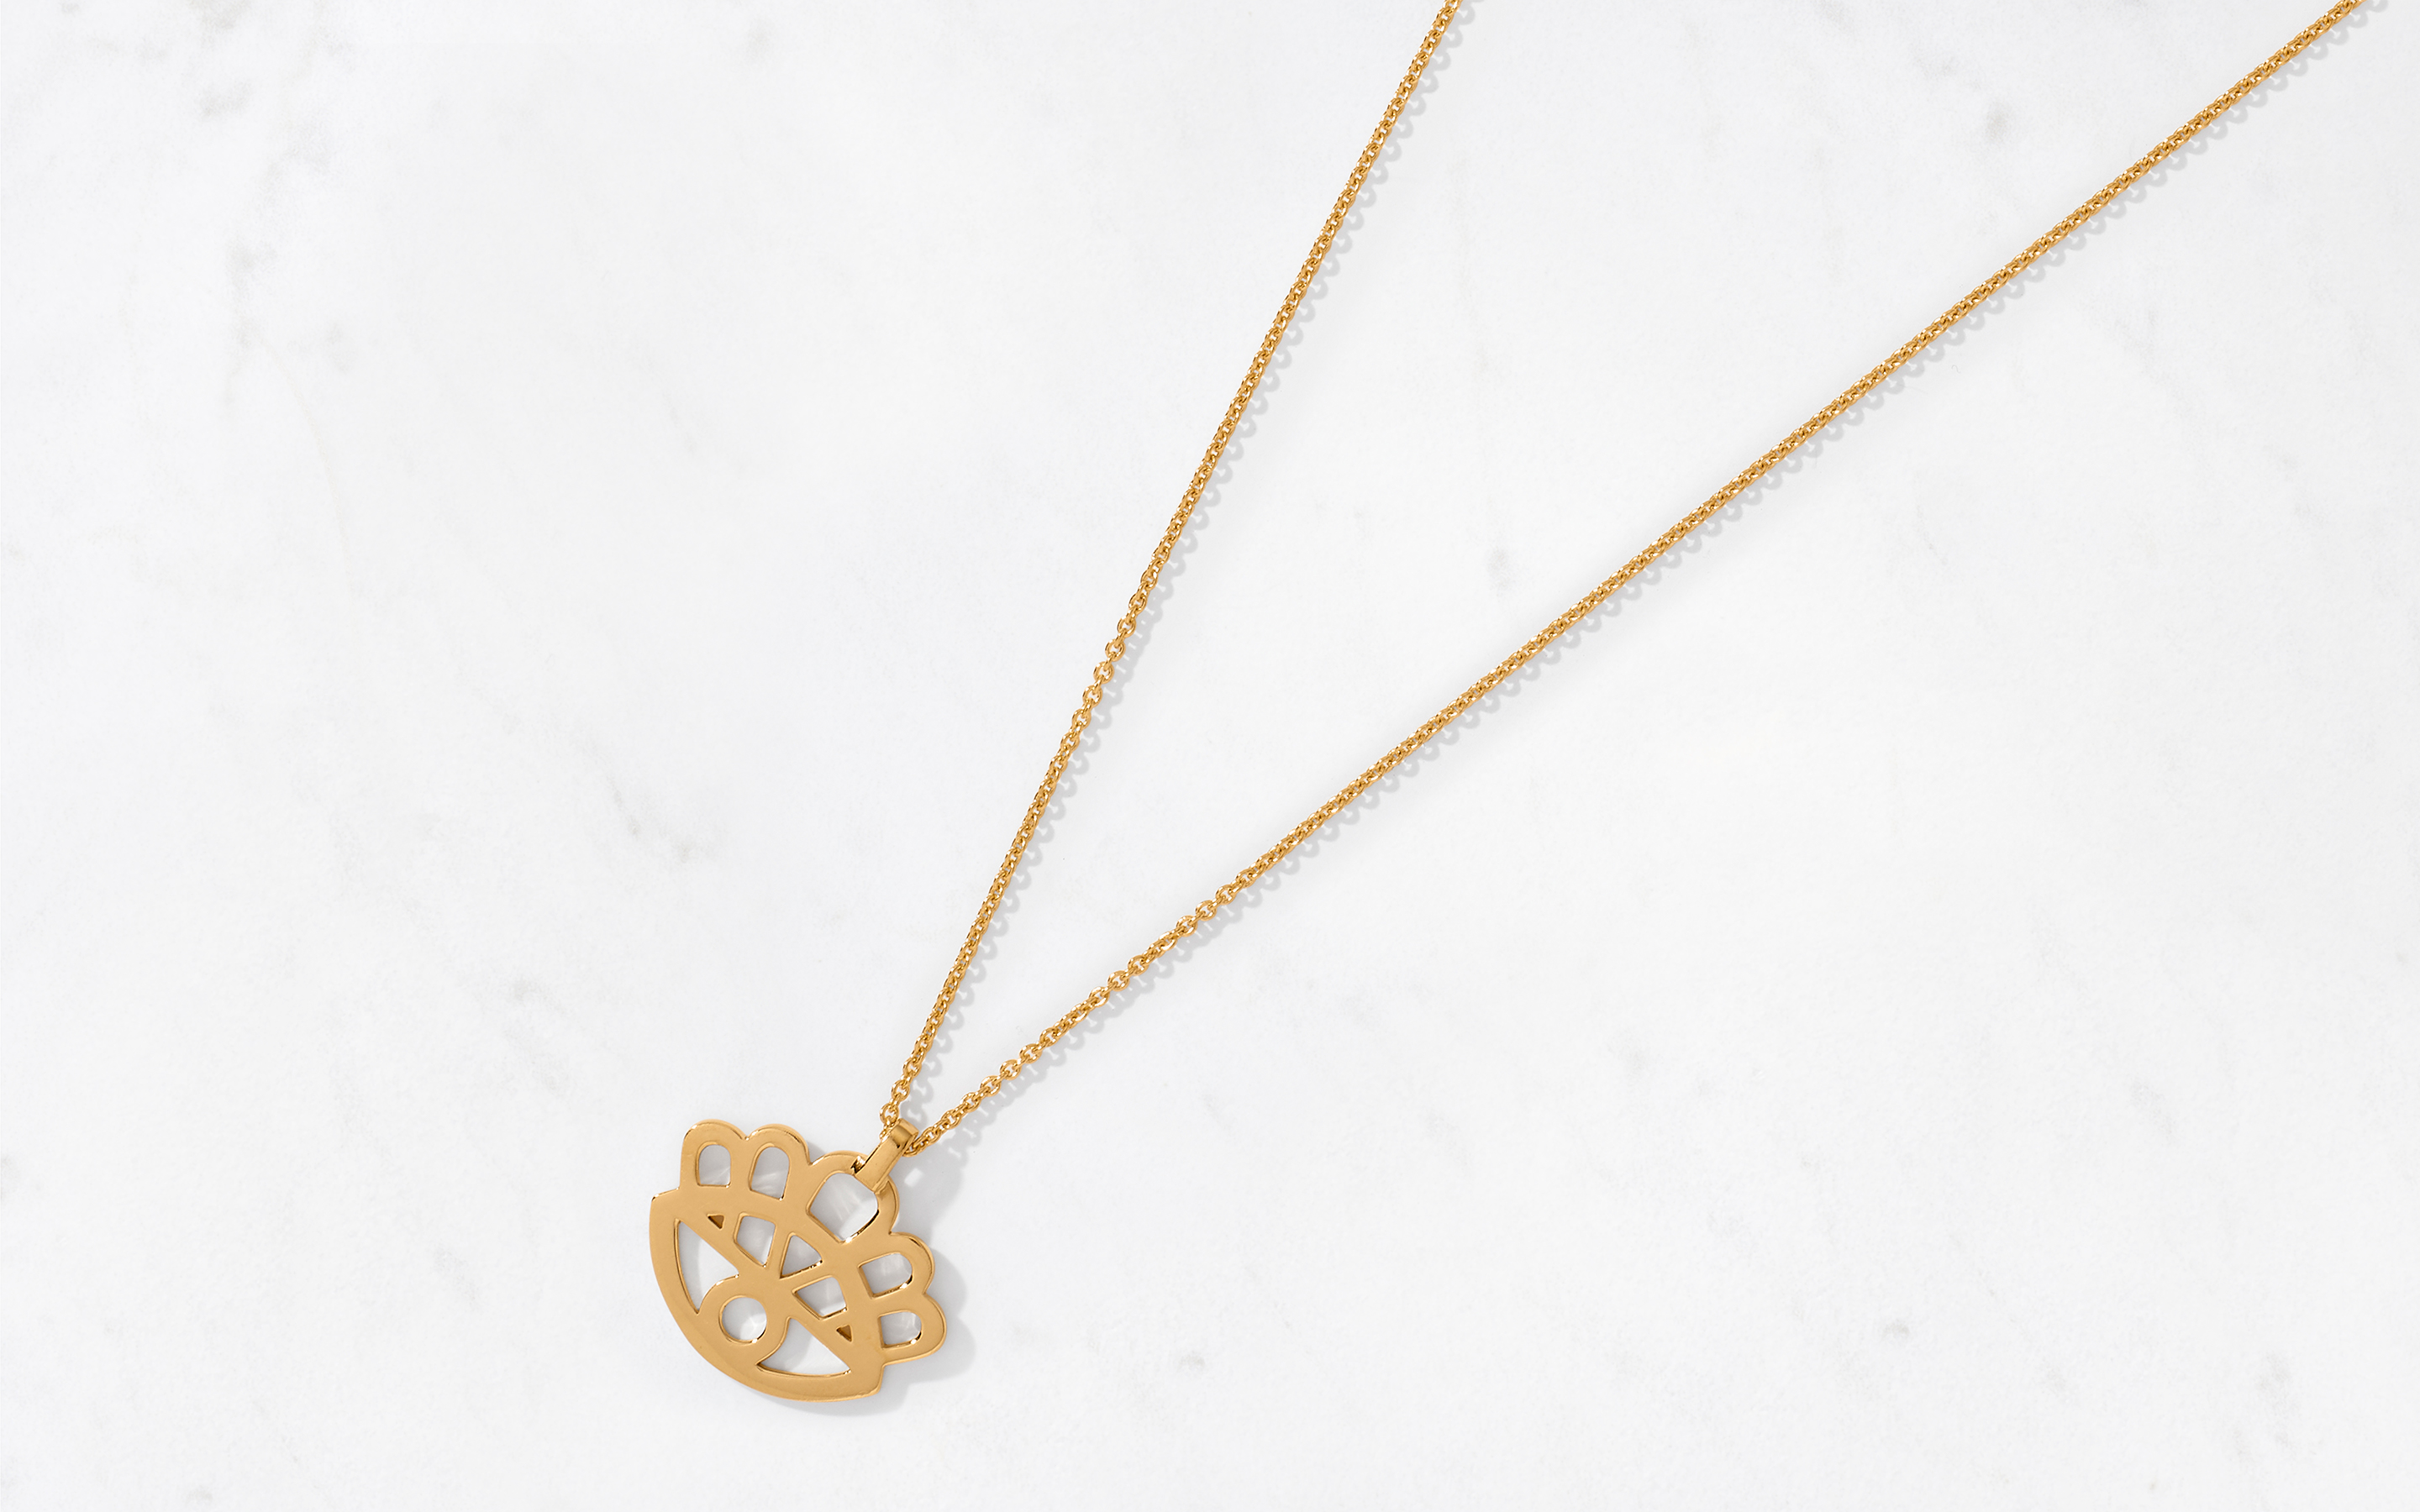 Floral Eye Pendant and Chain